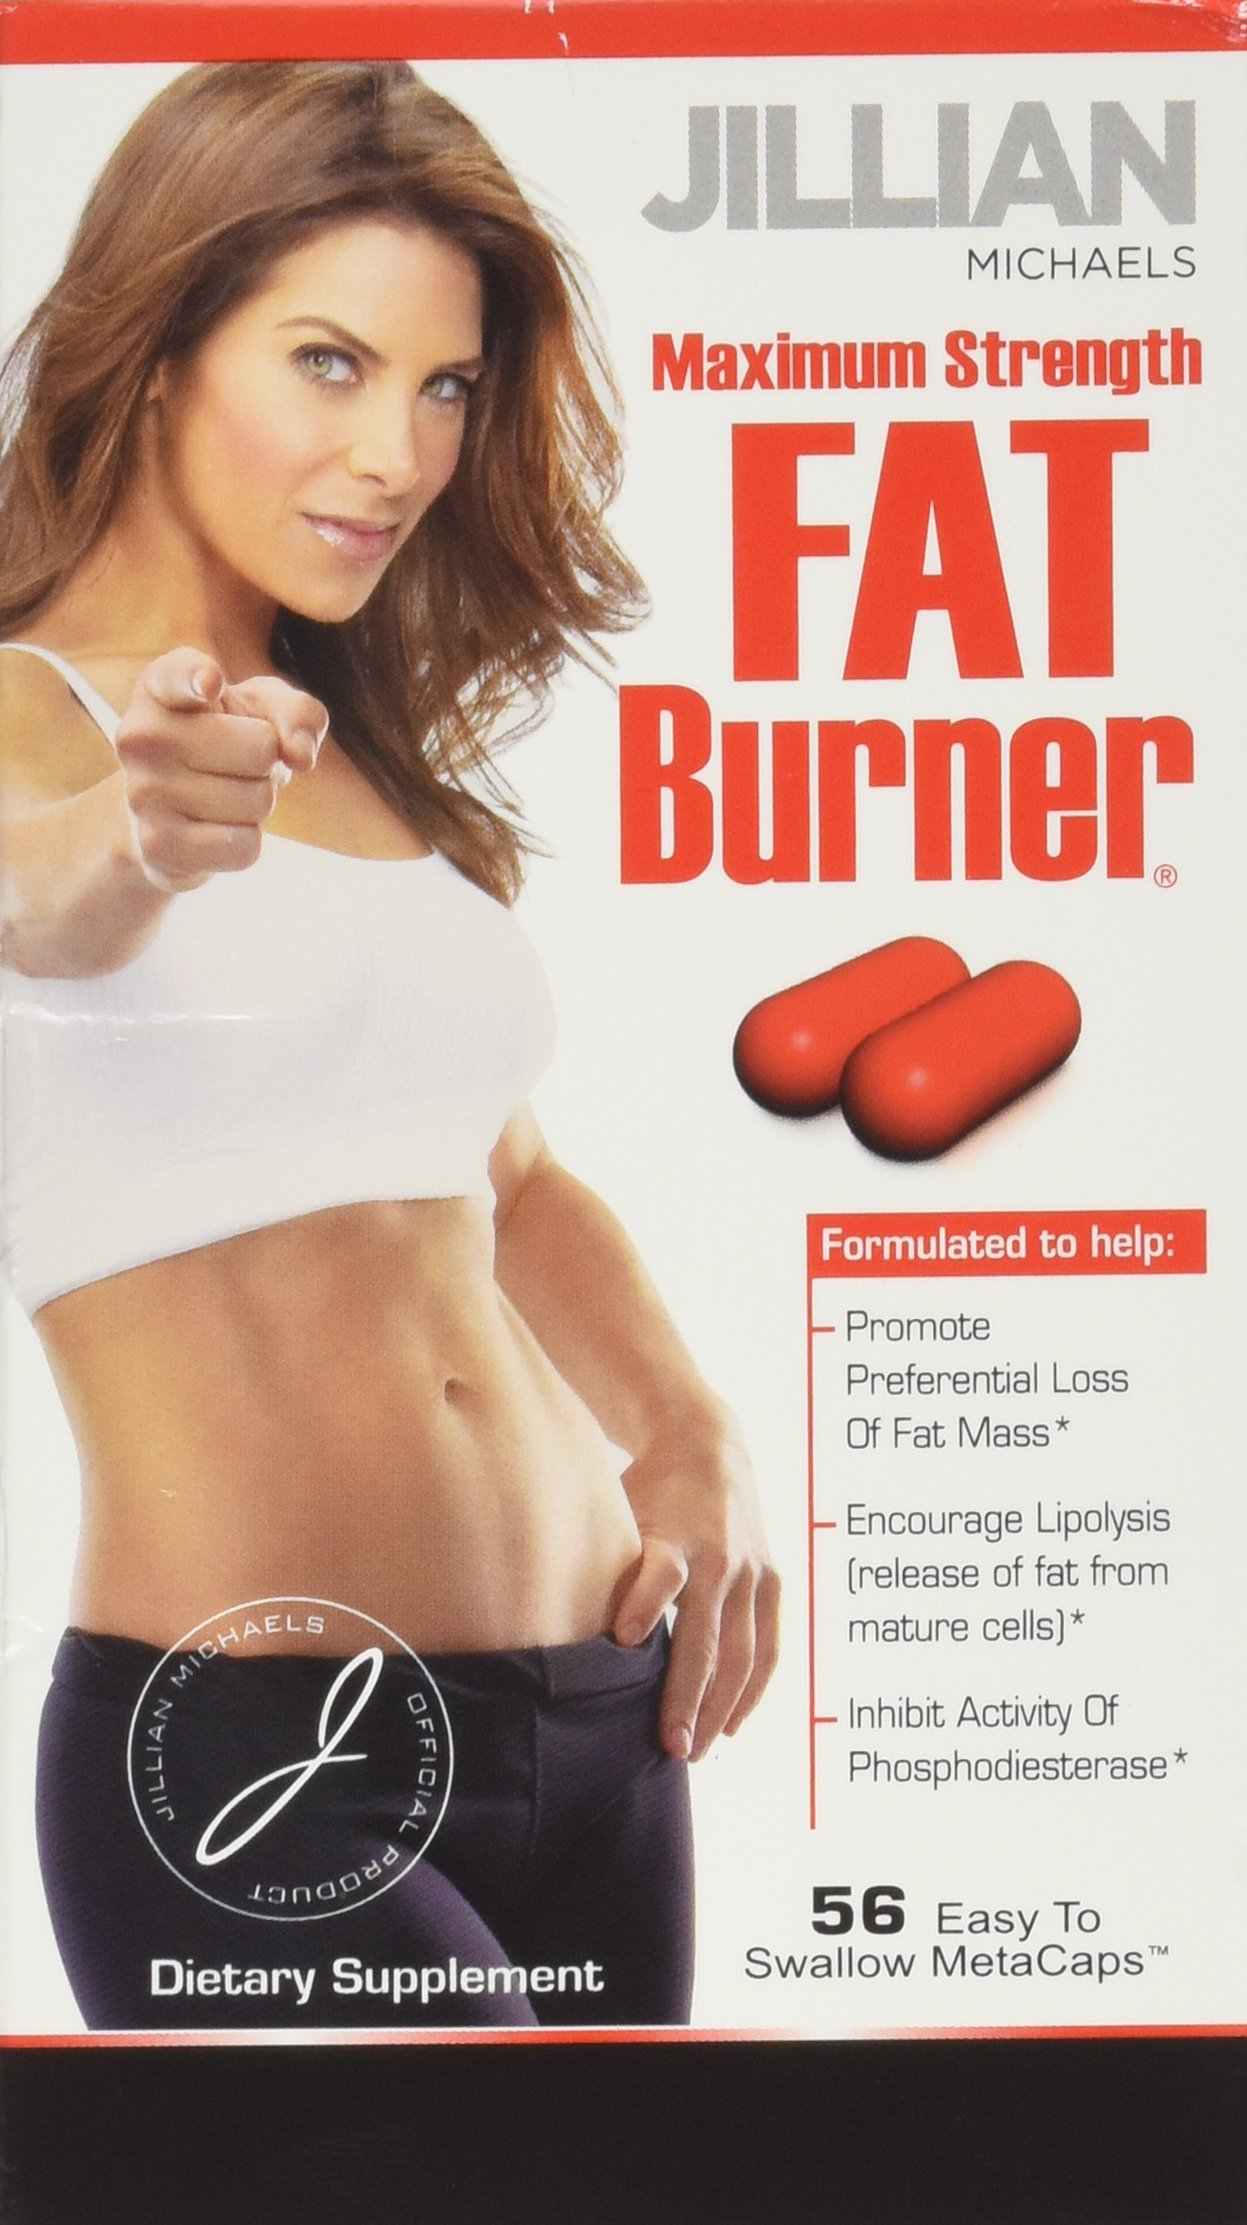 Thin Care Jillian Michaels Fat Burner MetaCaps, 56-Count by Thin Care